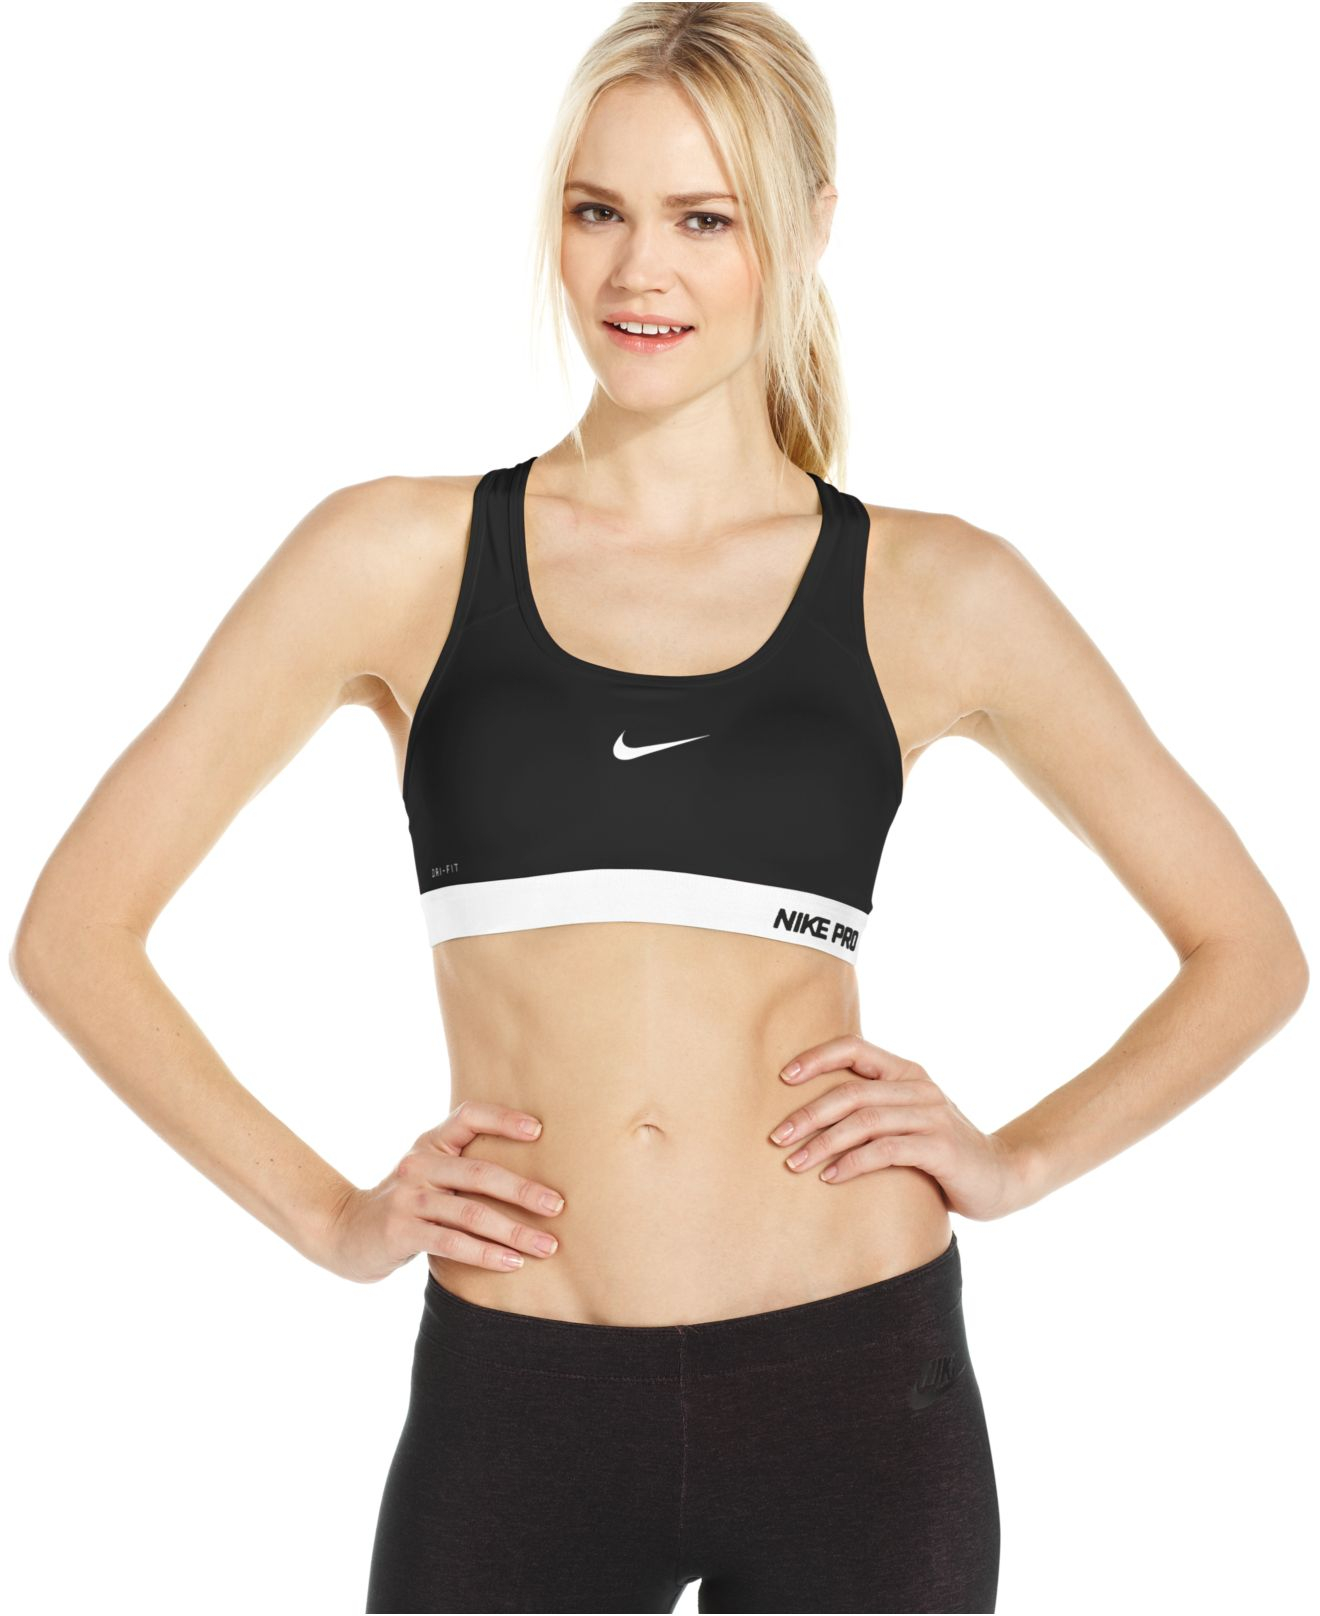 Women's Padded Sports Bra. SKU: womens-padded-sports-bra Special Price $ Was. Regular Price: $ Removable foam padding at bust. Seam-free construction with added stretch. Knit-in textures for comfort, support and shaping. Moisture-wicking technology keeps you .